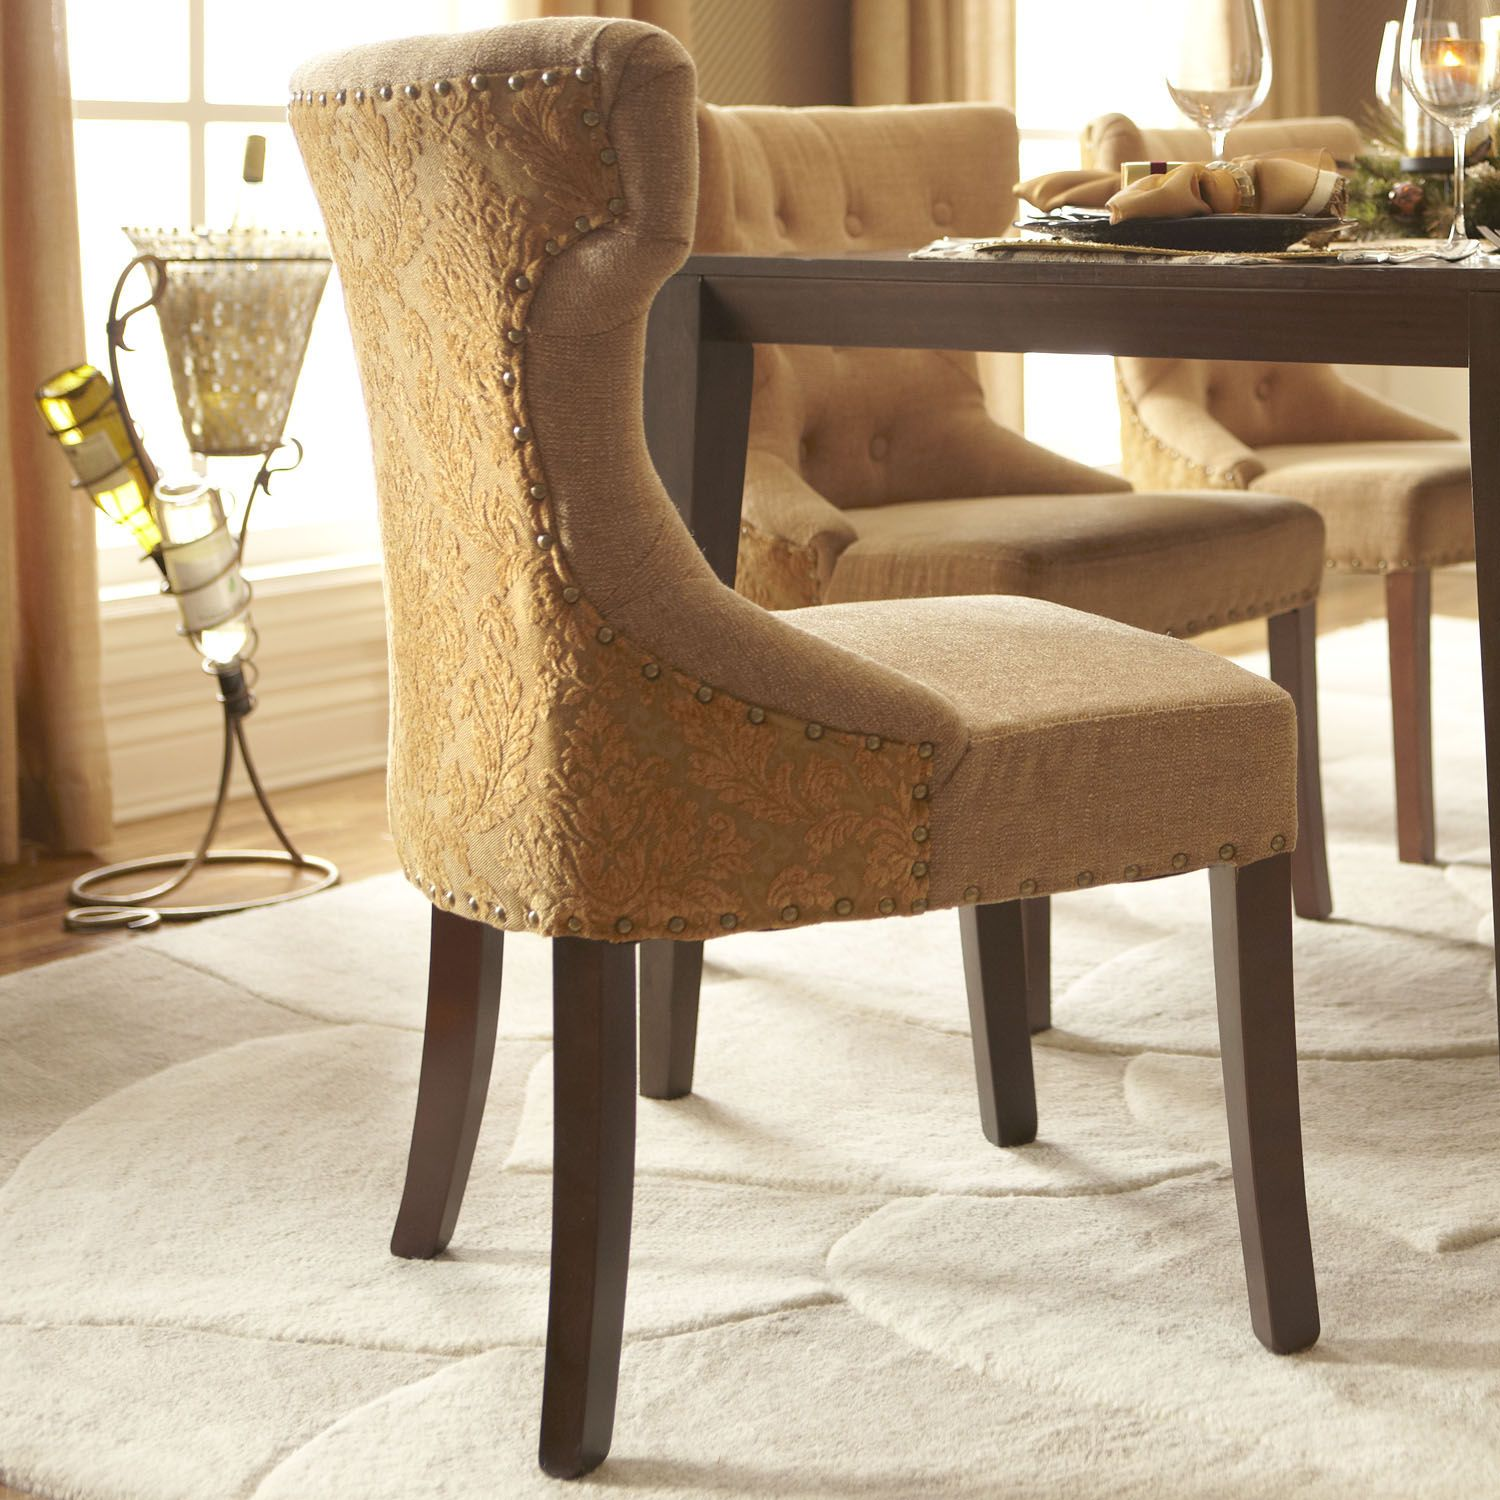 Hourglass Dining Chair Gold Damask Pier 1 Imports This Chair